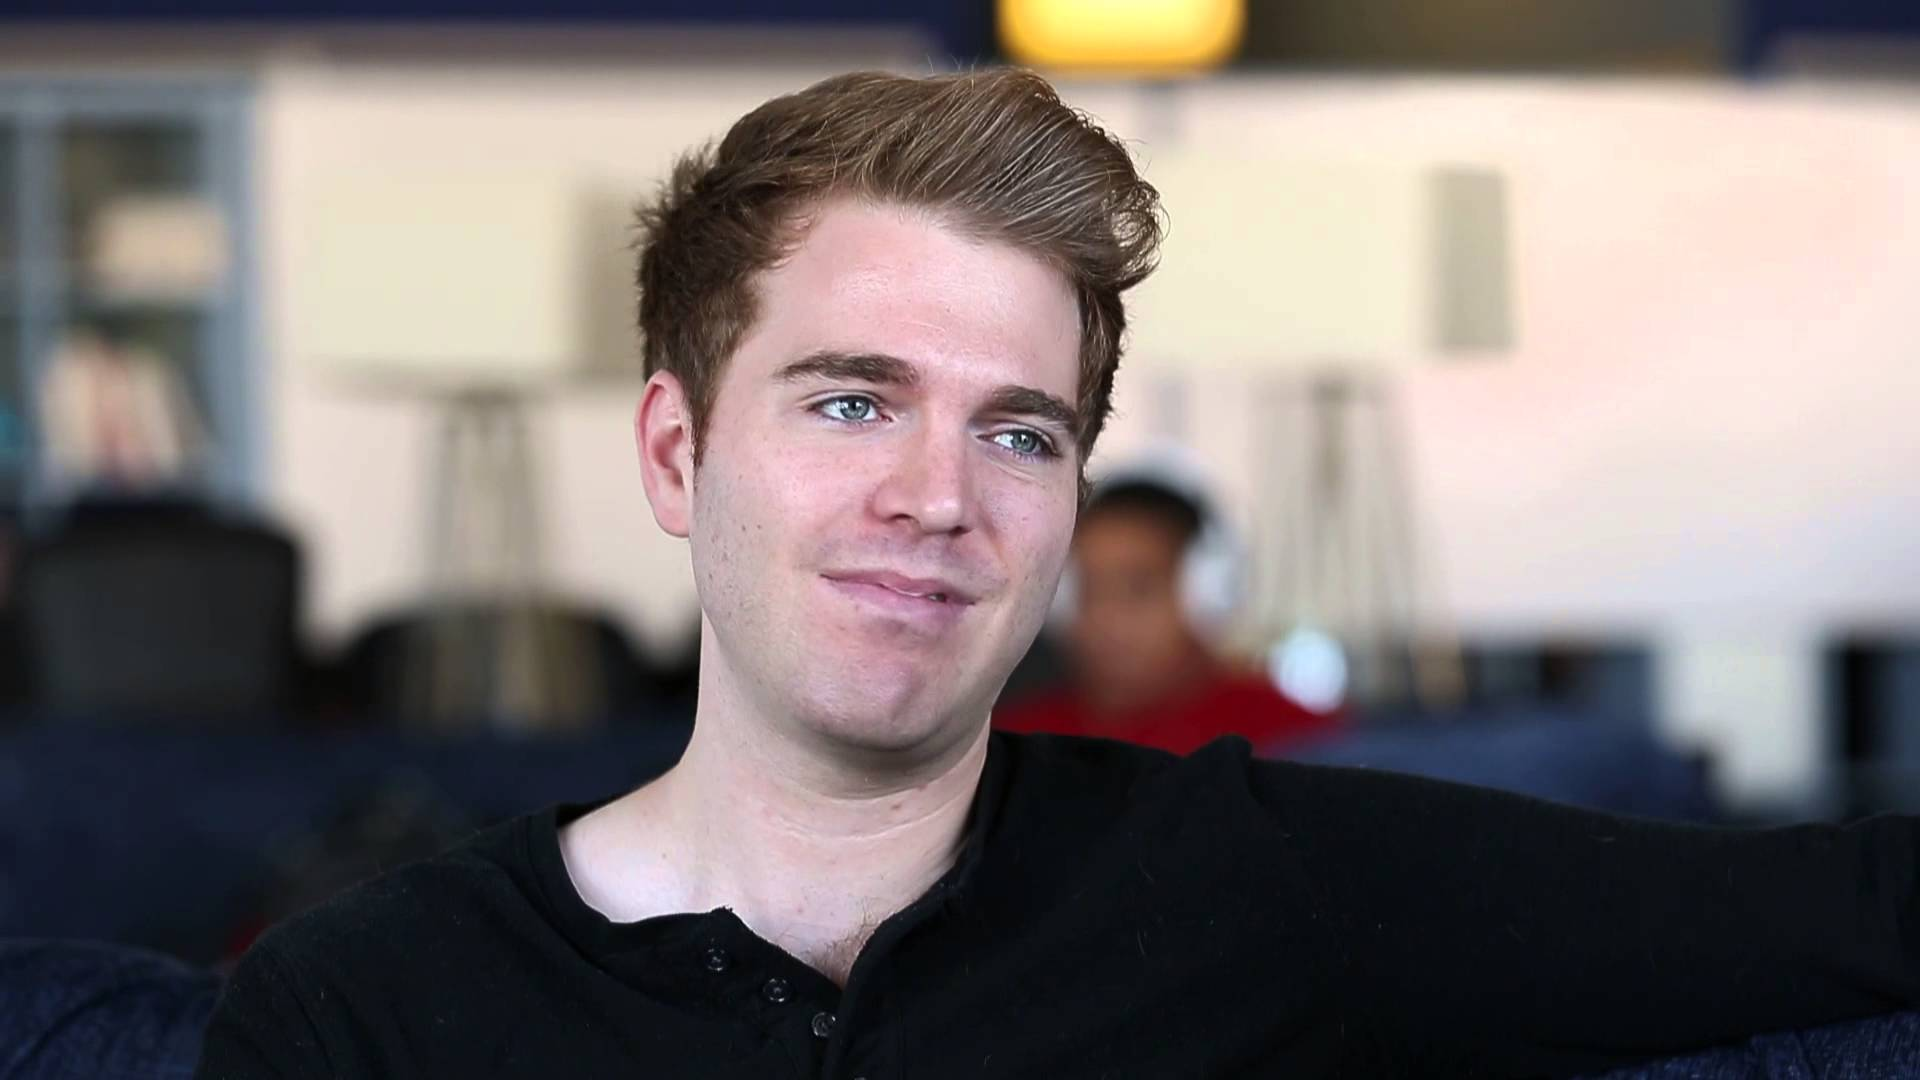 COOL / NOT COOL with SHANE DAWSON | What's Trending EXCLUSIVE ...